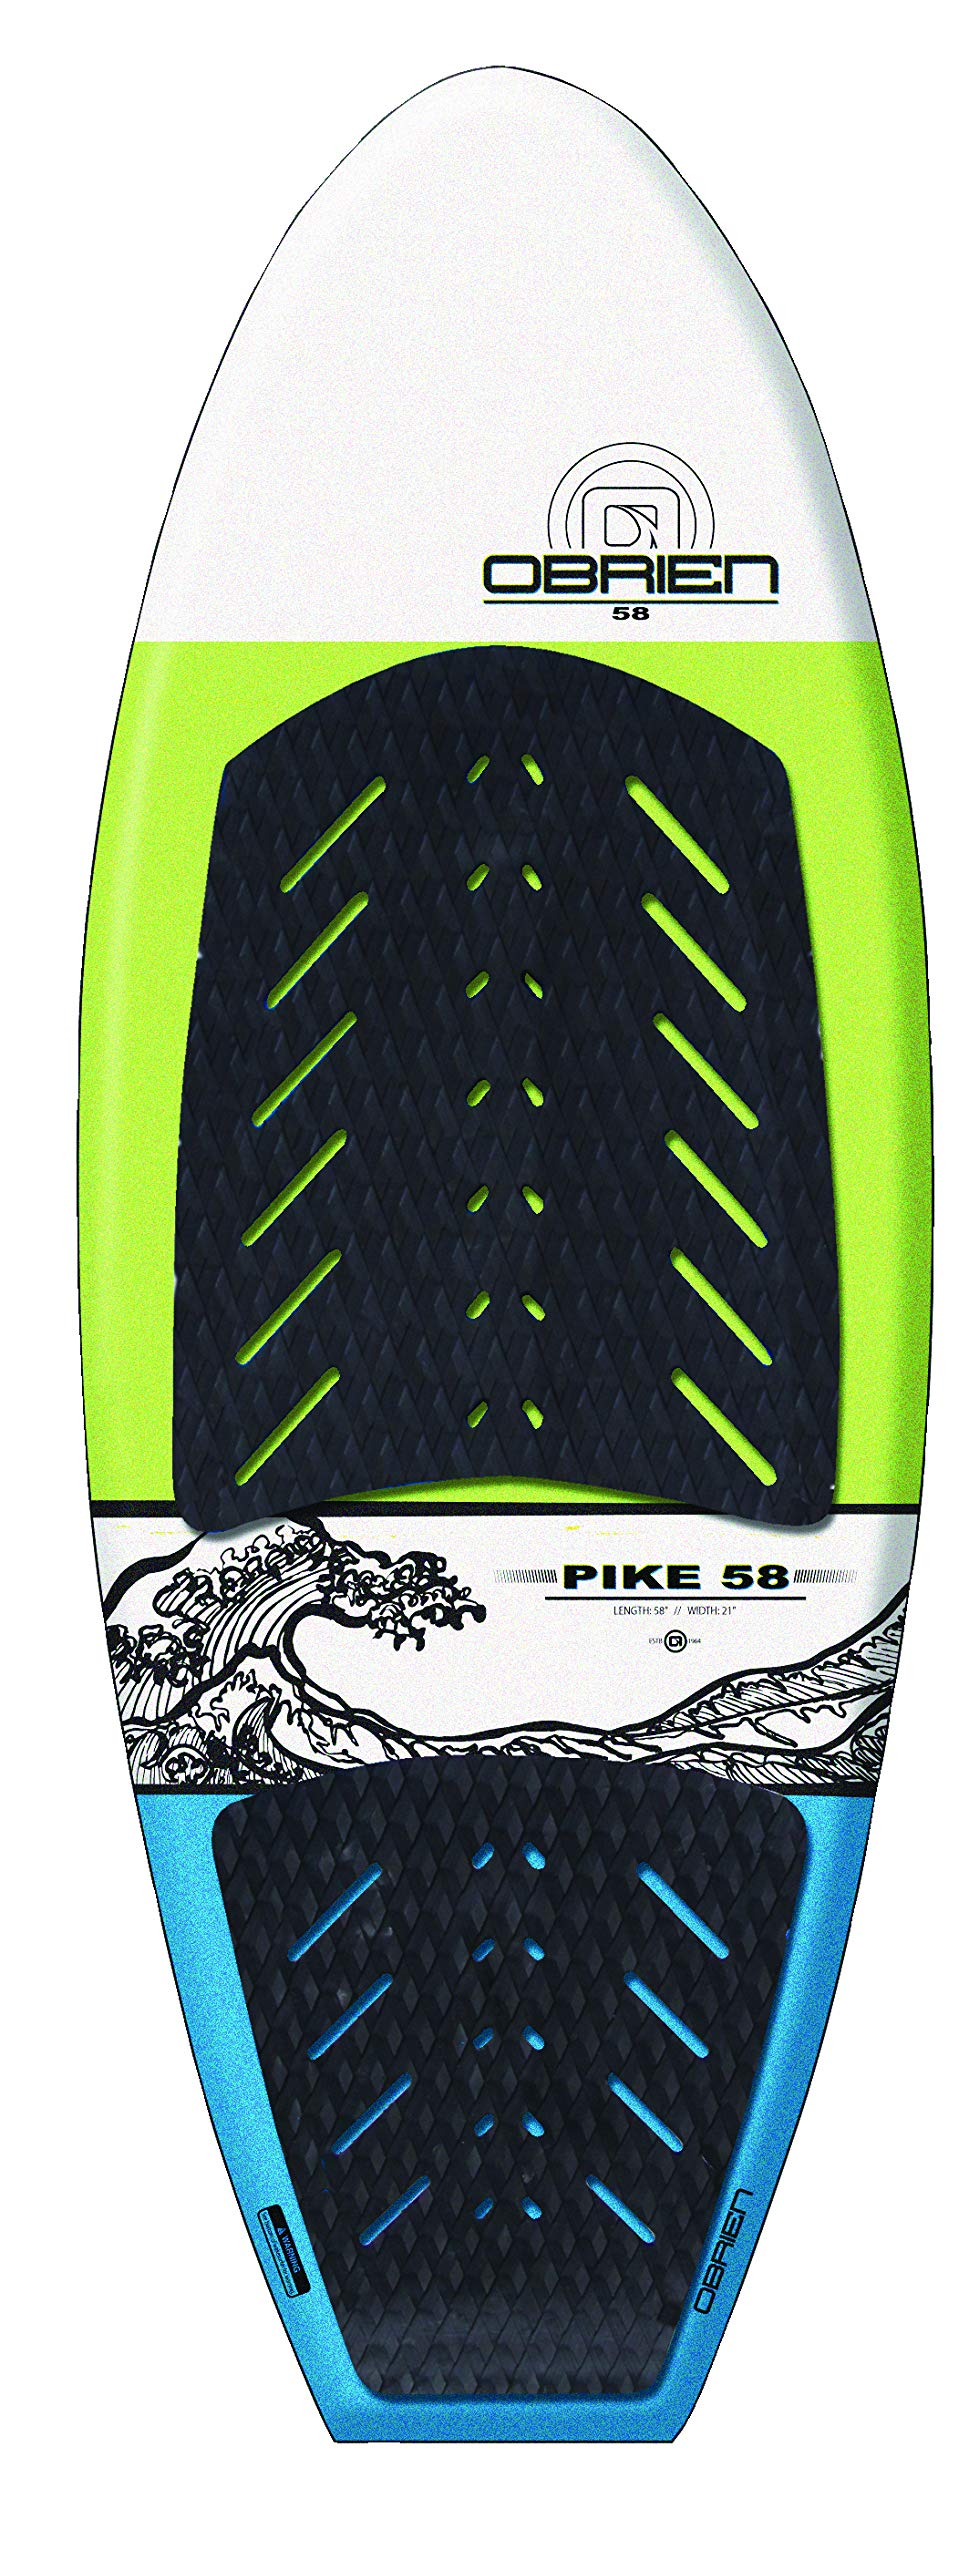 O'Brien Pike Softtop Wakesurf Board, 58'' by O'Brien